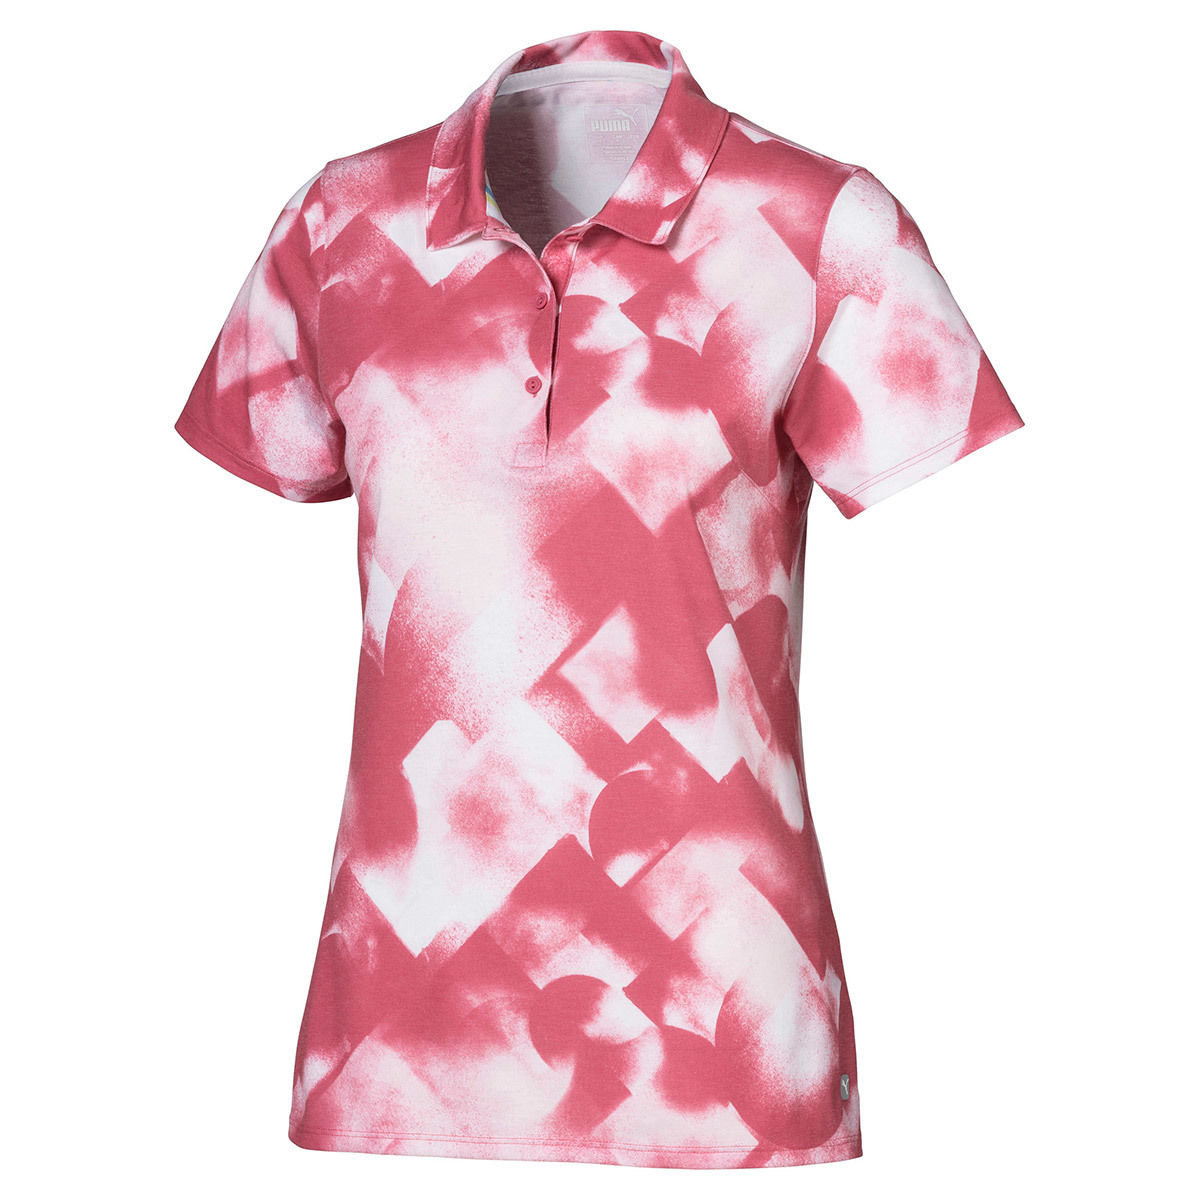 Puma-Golf-Soft-Geo-ladies-polo-shirt.jpg#asset:956296